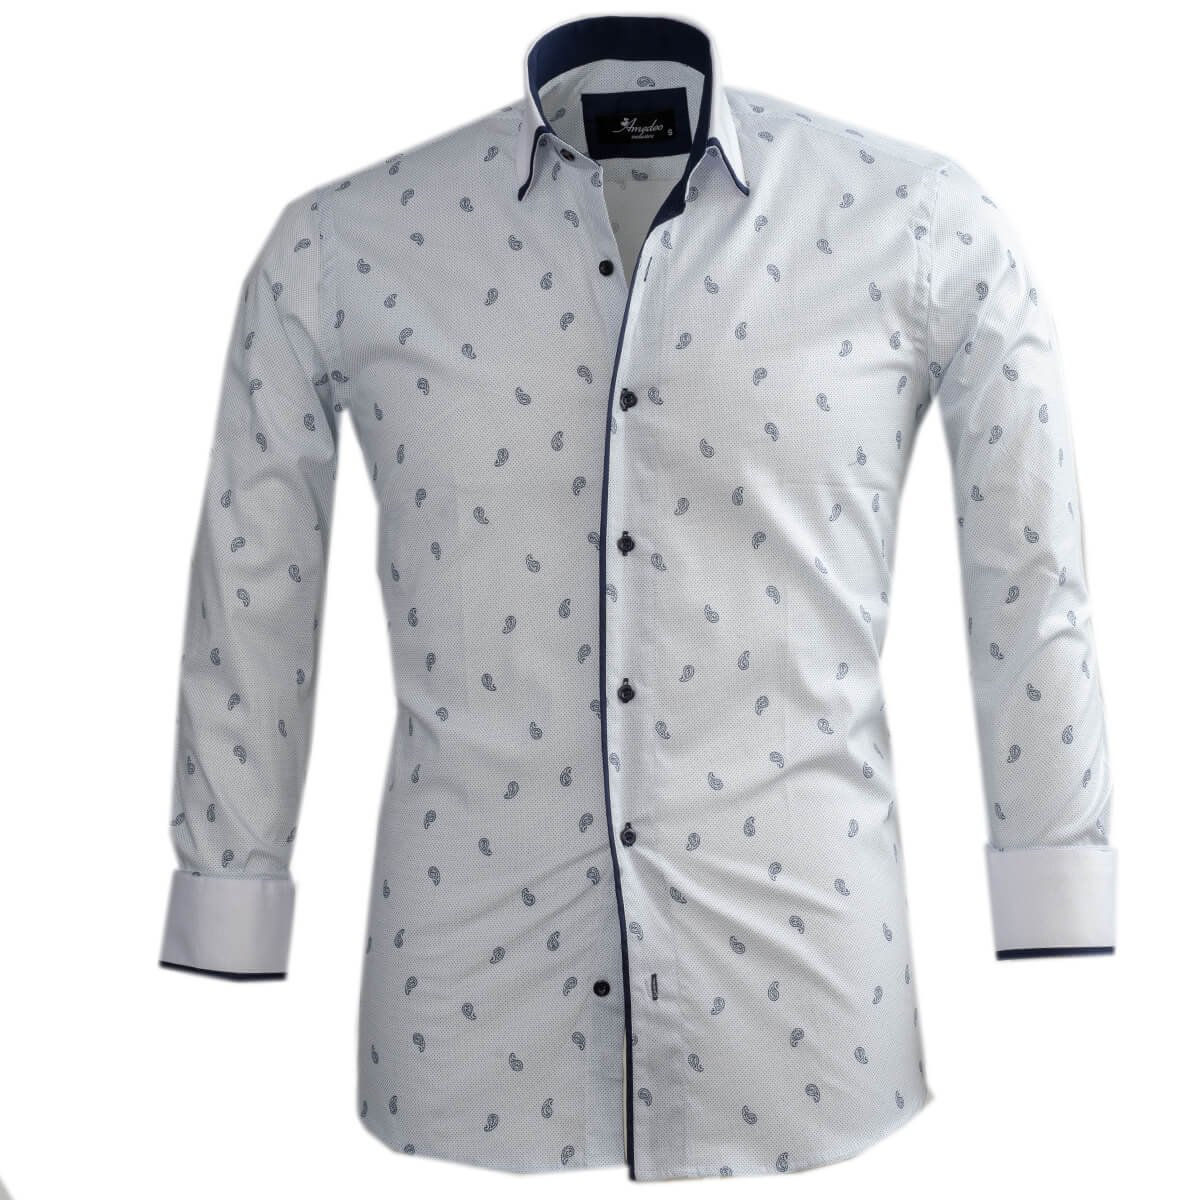 White Light Blue Paisley Mens Slim Fit Designer Dress Shirt - tailored Cotton Shirts for Work and Casual Wear - Amedeo Exclusive